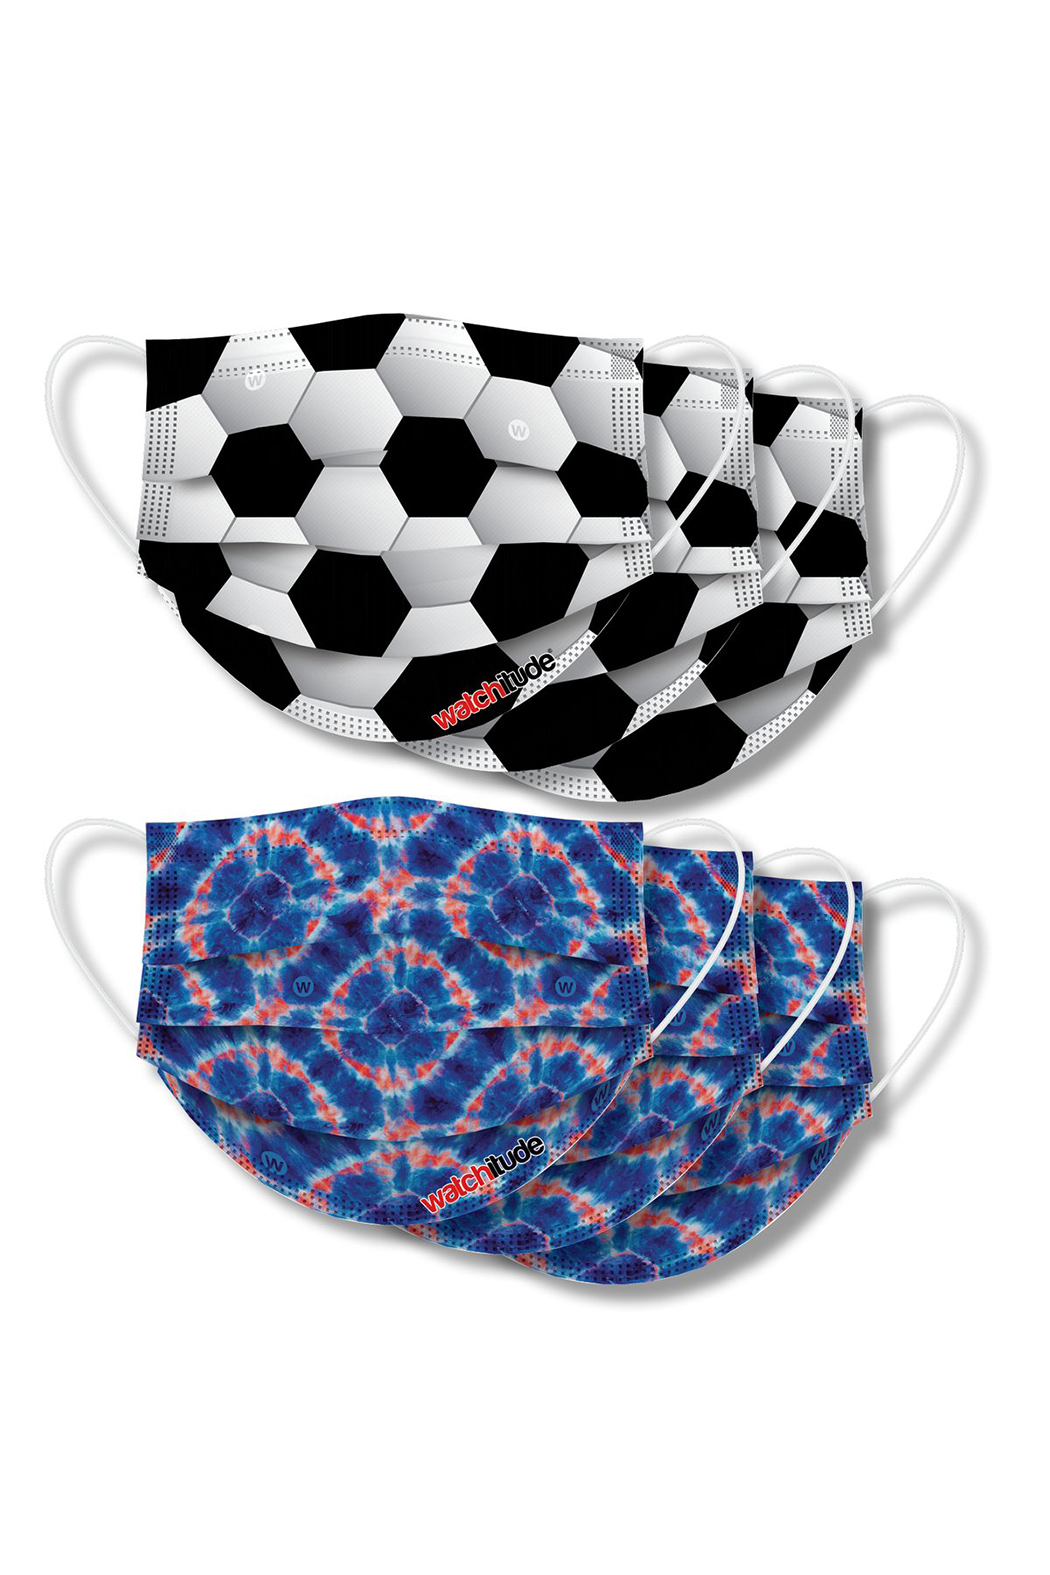 Watchitude Fun Carbon Masks Tie Dye Soccer 6 Pack - Kids Ages 5-1 - Main Image